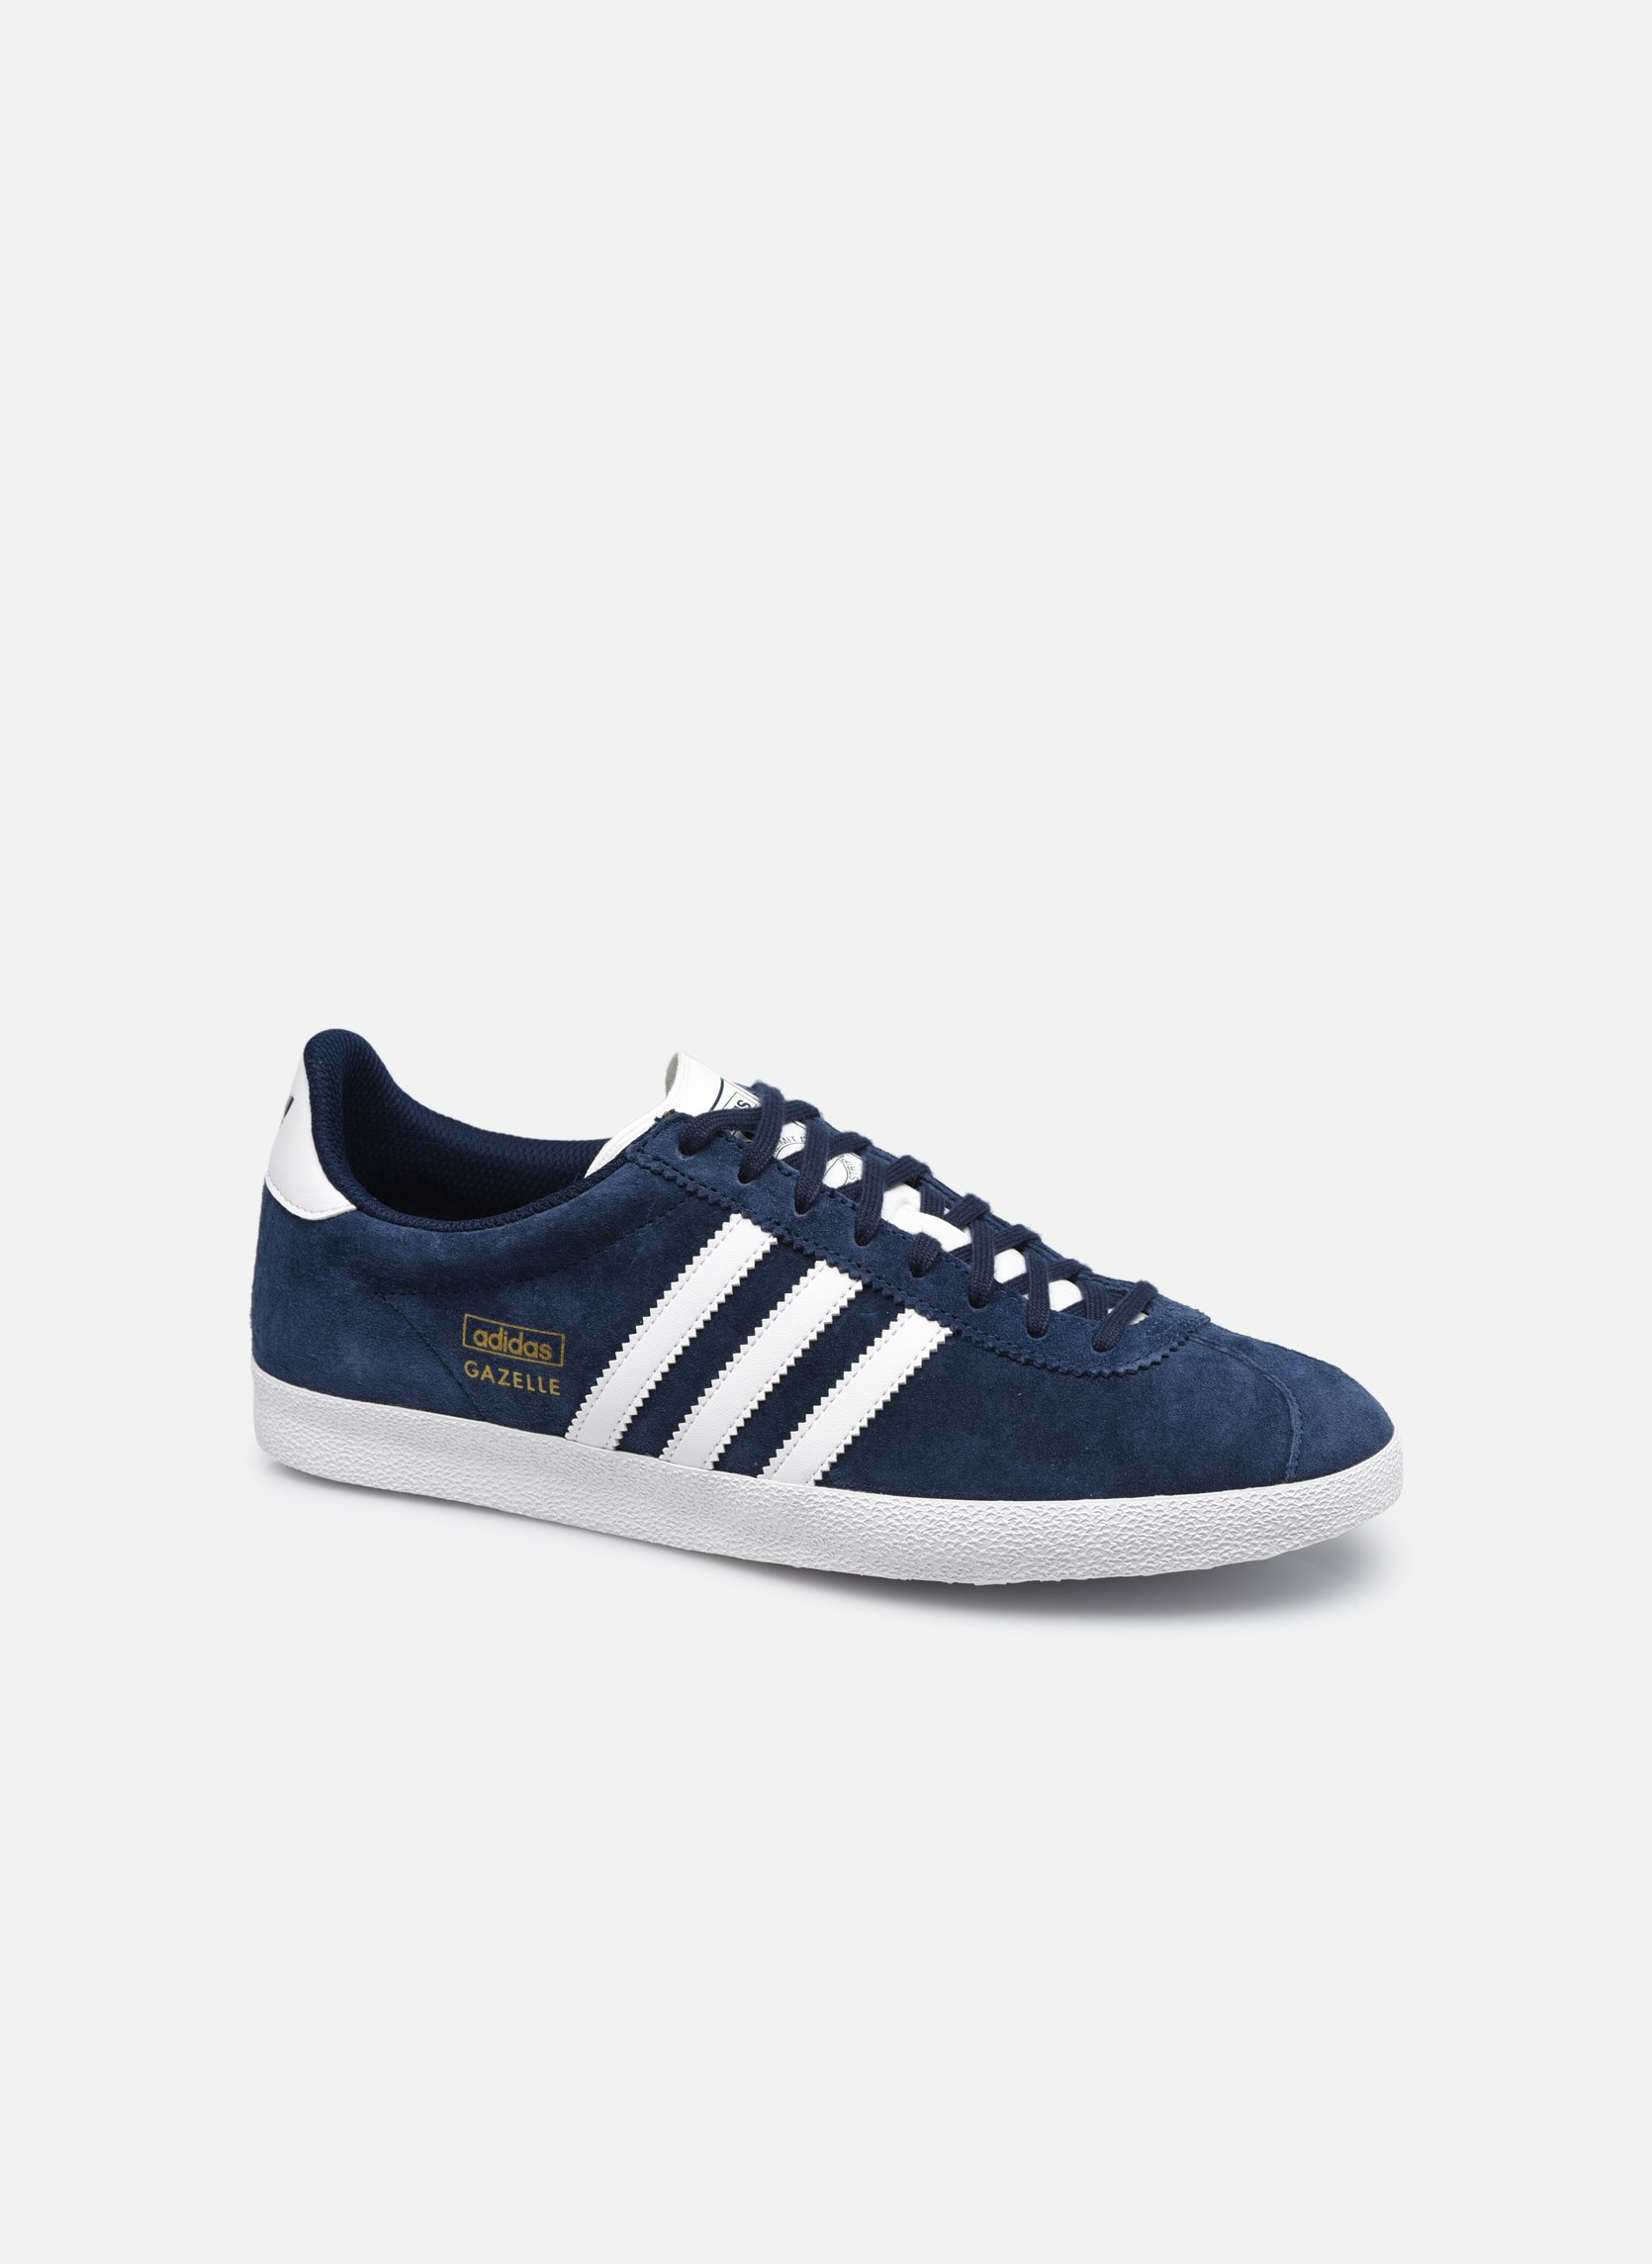 adidas originals gazelle og bleu baskets chez sarenza 143290. Black Bedroom Furniture Sets. Home Design Ideas